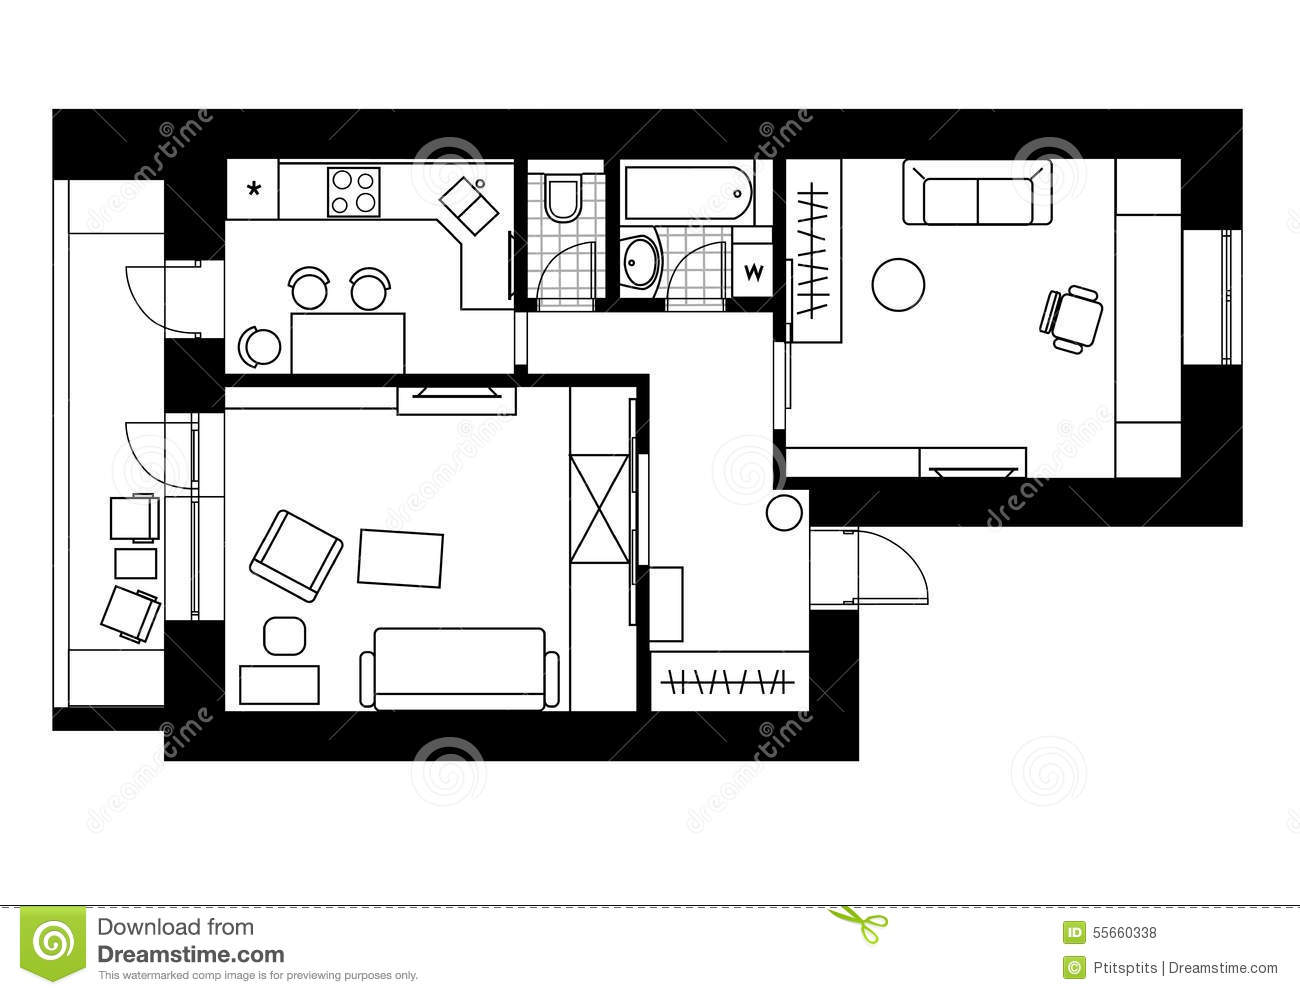 int rieur de plan de dessin de l 39 appartement avec une. Black Bedroom Furniture Sets. Home Design Ideas